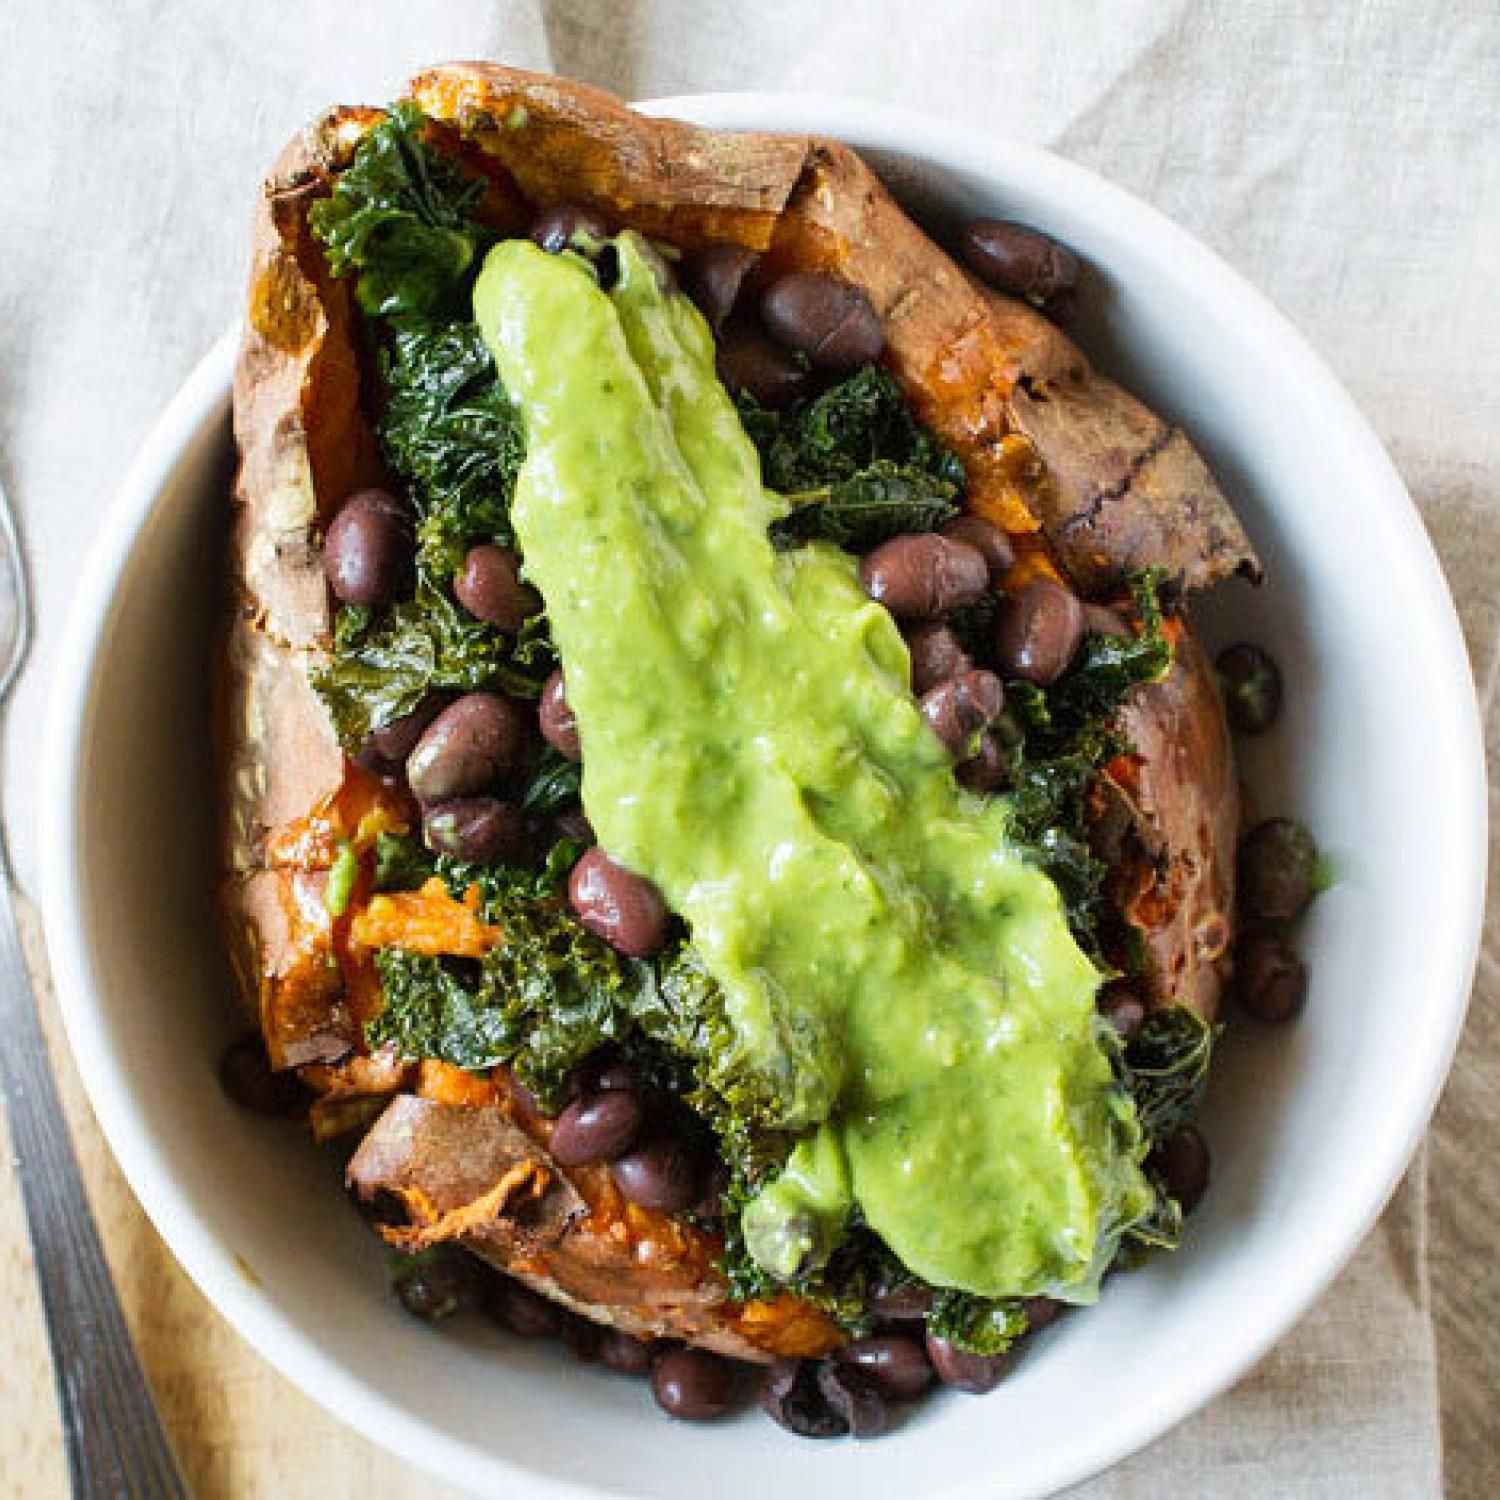 LowCholesterol Recipes That Are Ridiculously Delicious